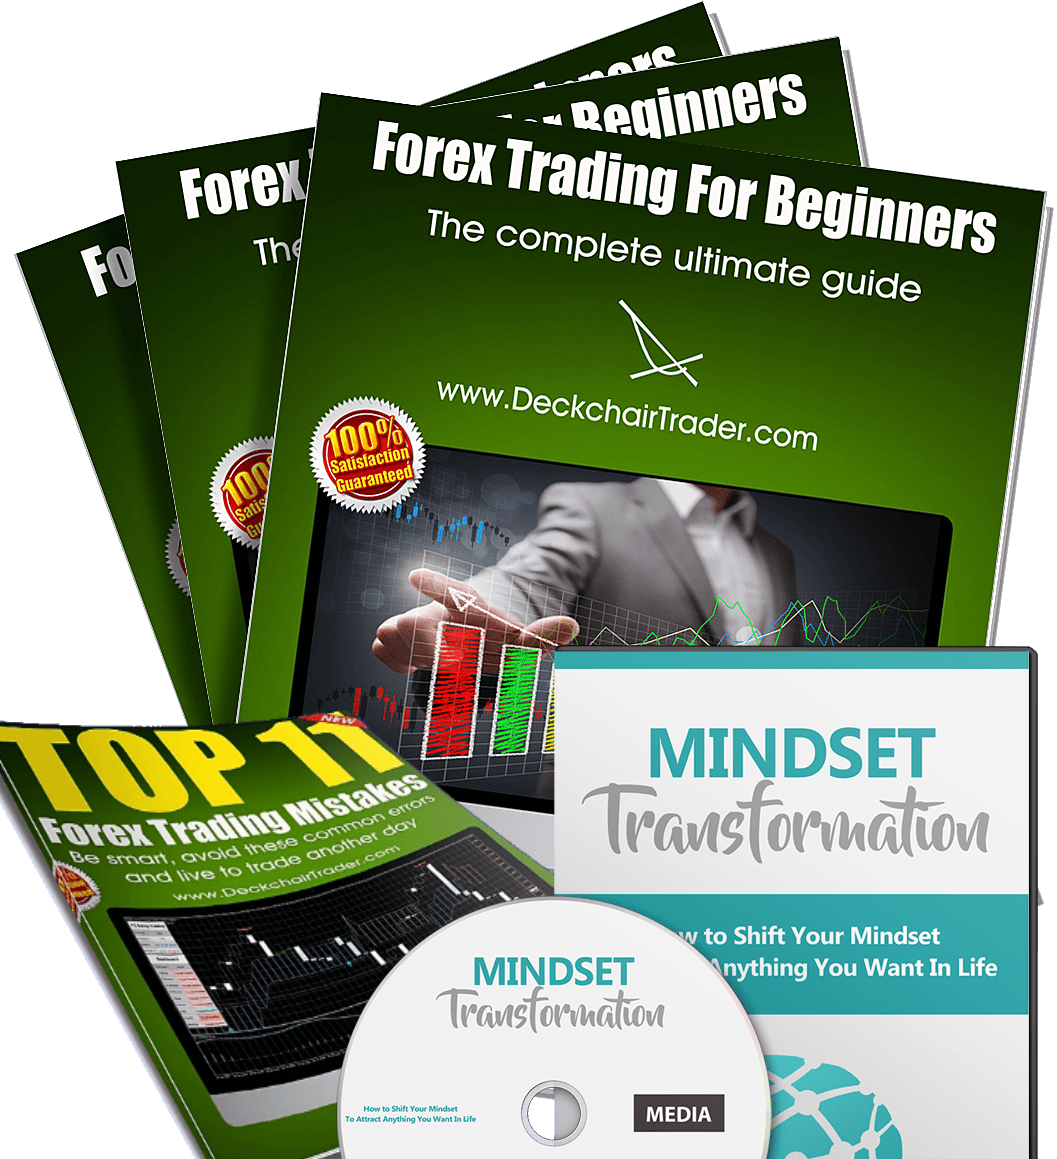 Forex Trading for Beginners (over 170 pages), Top 11 Trading Mistakes, Mindset Transformation